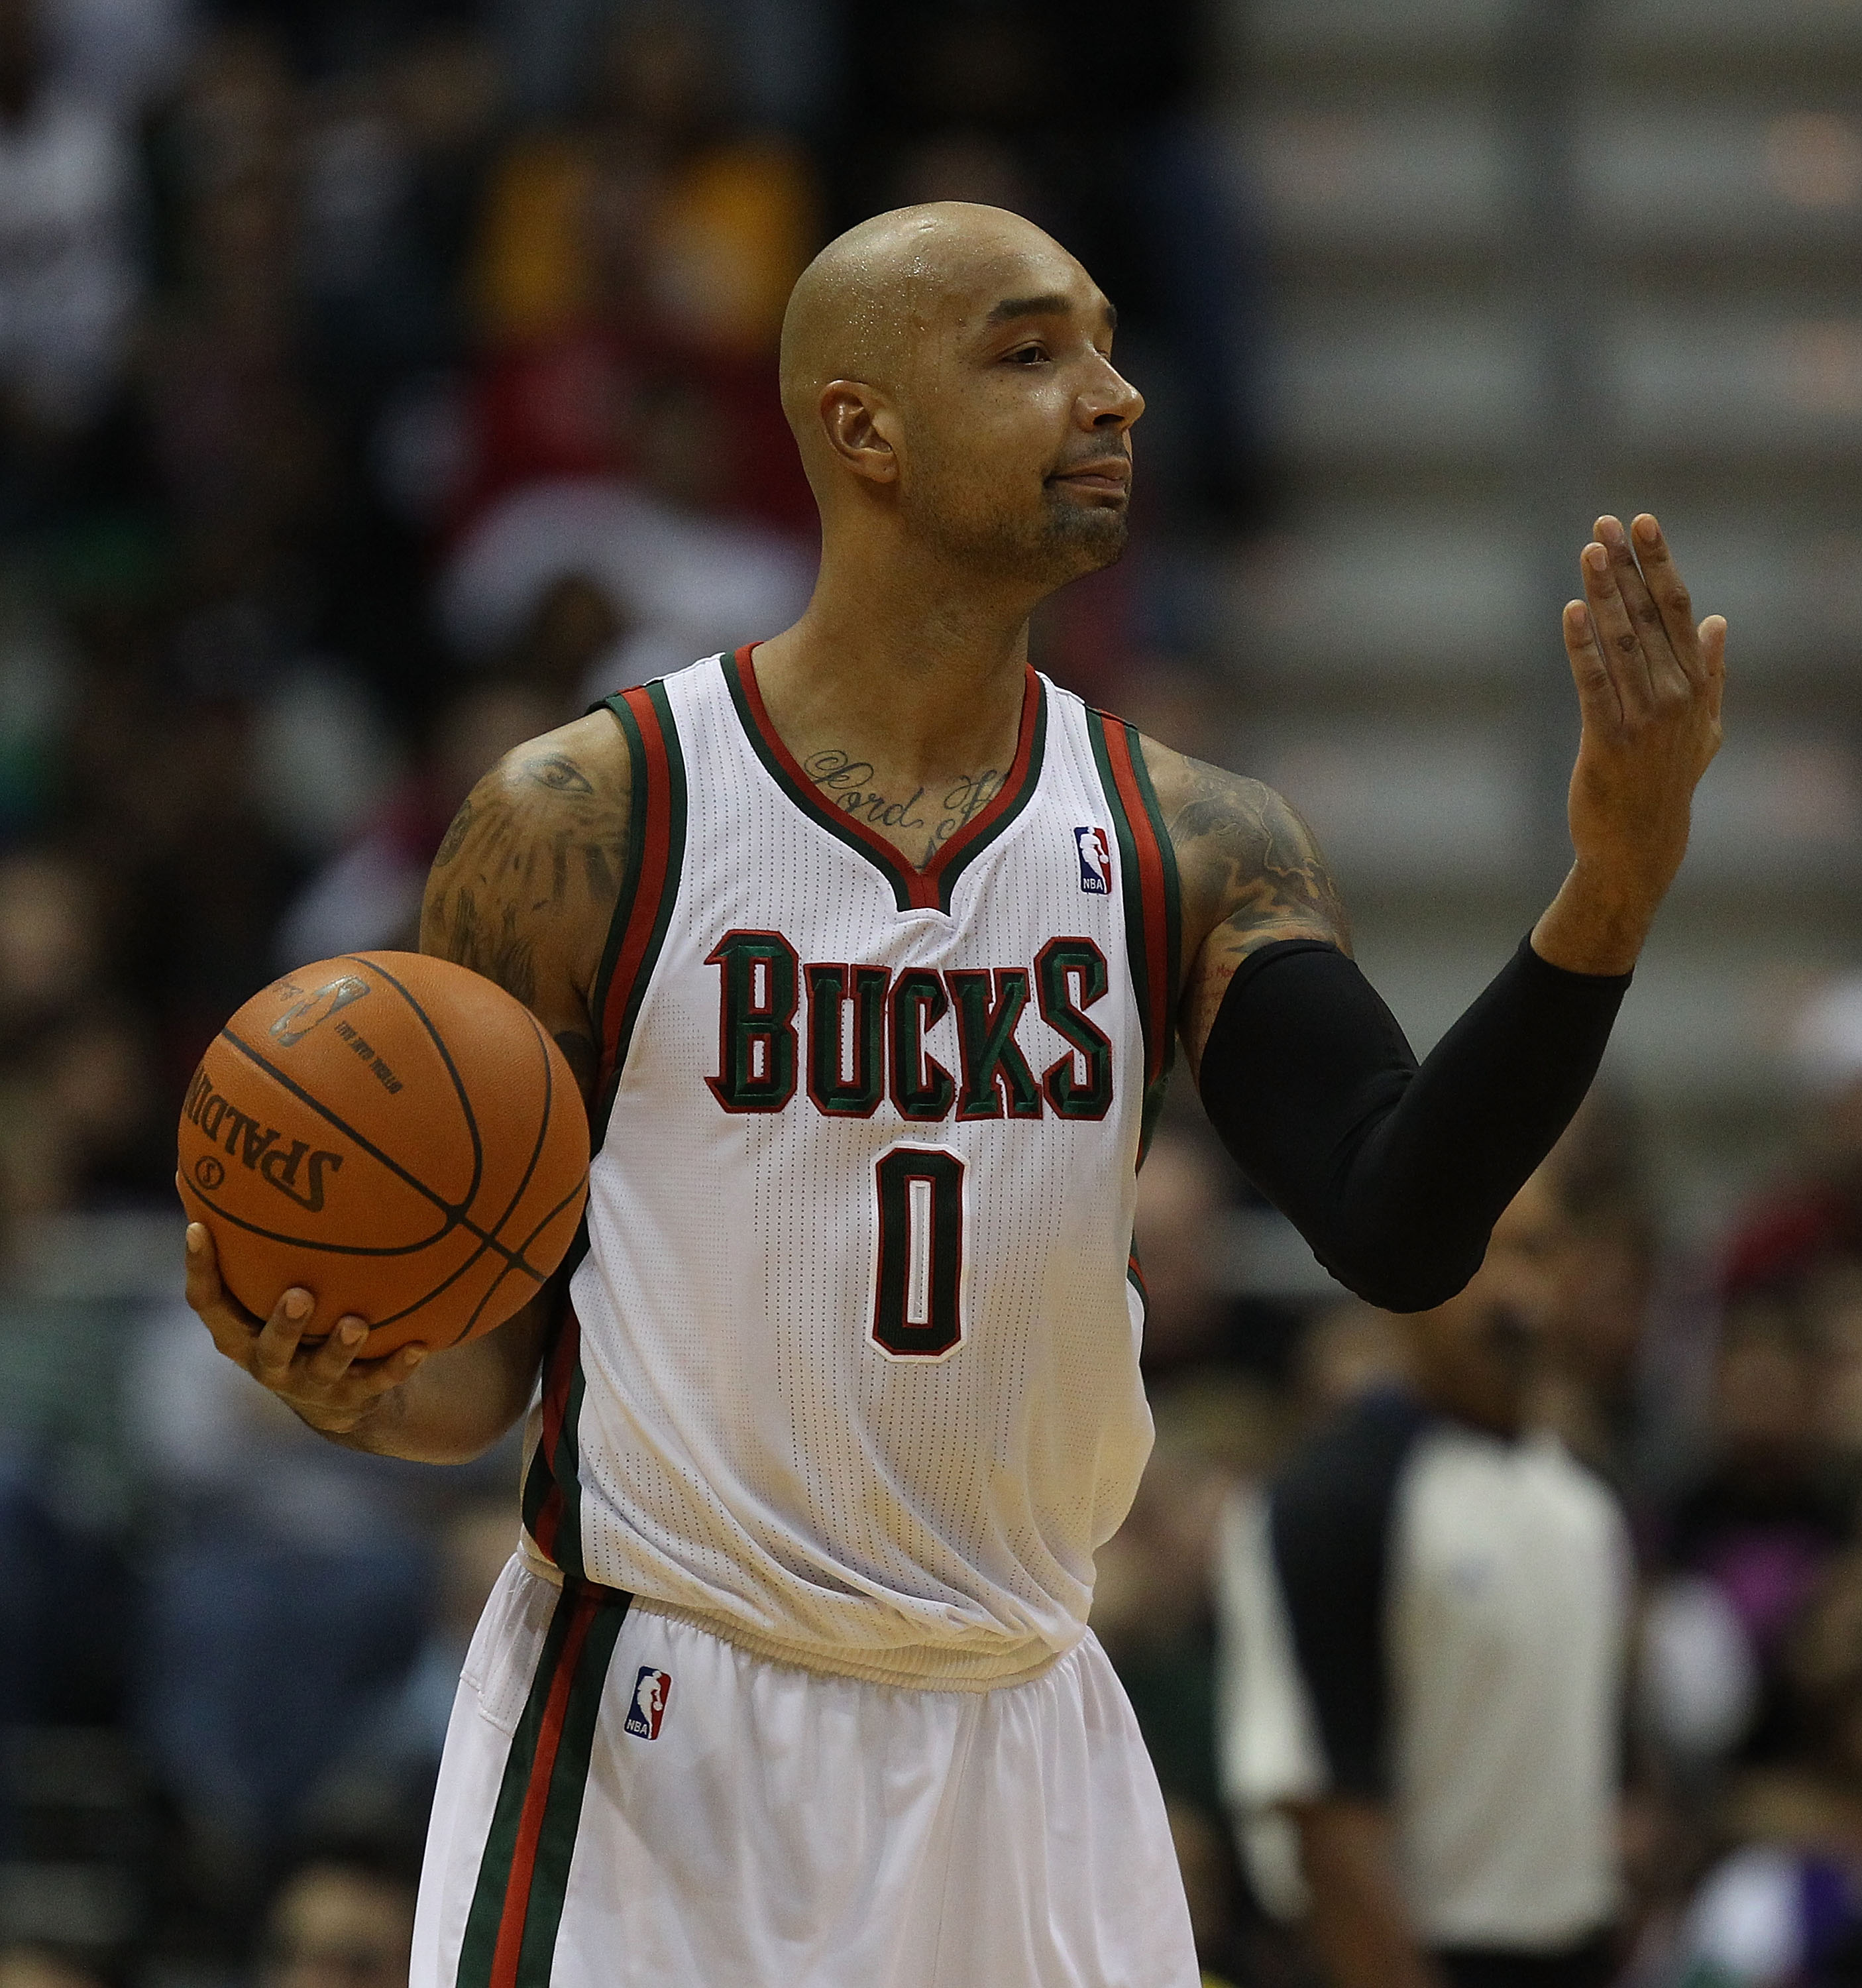 MILWAUKEE, WI - NOVEMBER 16: Drew Gooden #0 of the Milwaukee Bucks signals to a teammate against the Los Angeles Lakers at the Bradley Center on November 16, 2010 in Milwaukee, Wisconsin. The Lakers defeated the Bucks 118-107. NOTE TO USER: User expressly